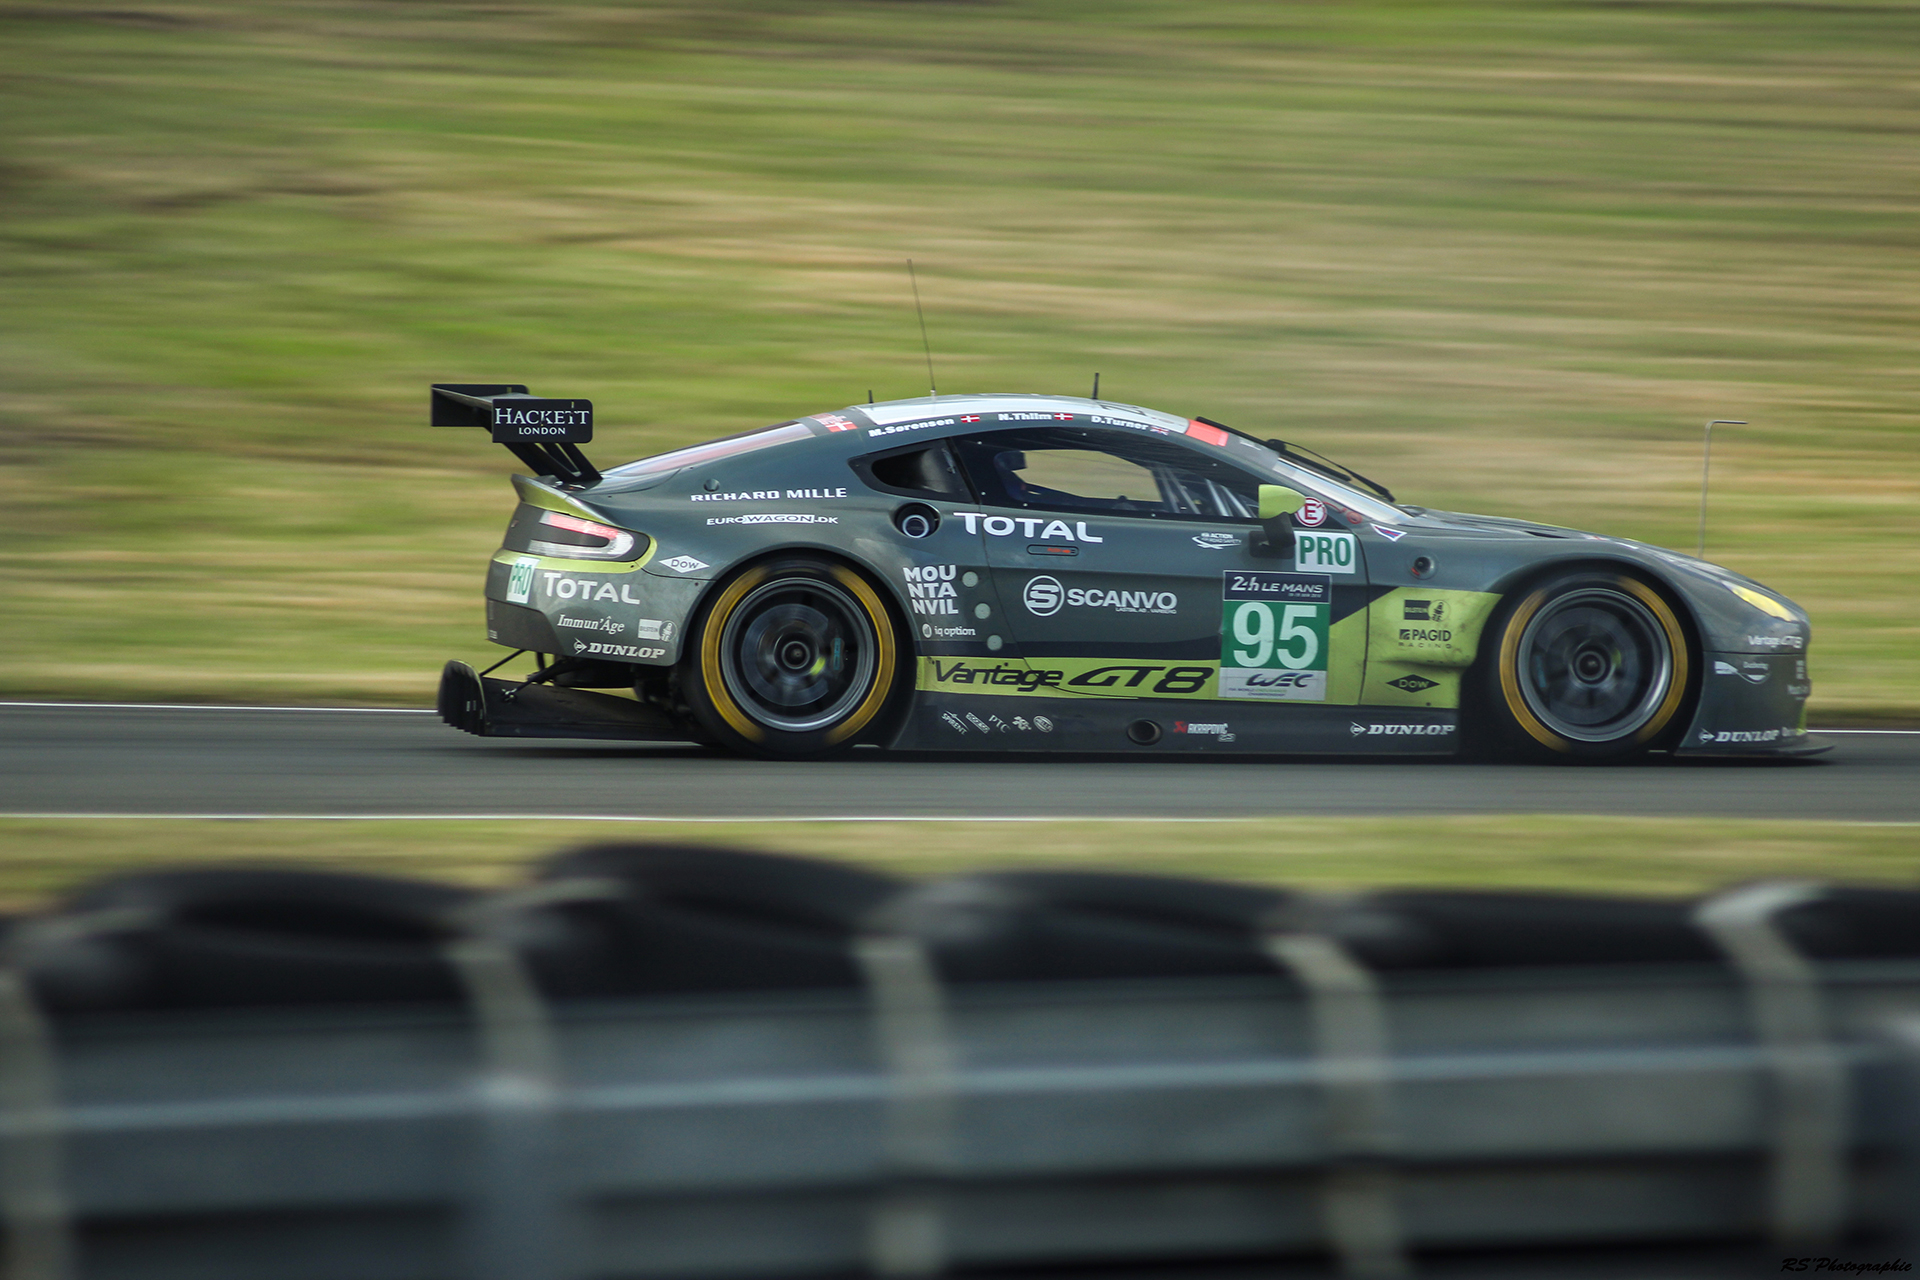 Aston Martin Vantage V8 n95 - AM Racing - THIIM - SORENSEN - TURNER - GTE Pro - 2016 LM24 - Arnaud Demasier RS Photographie